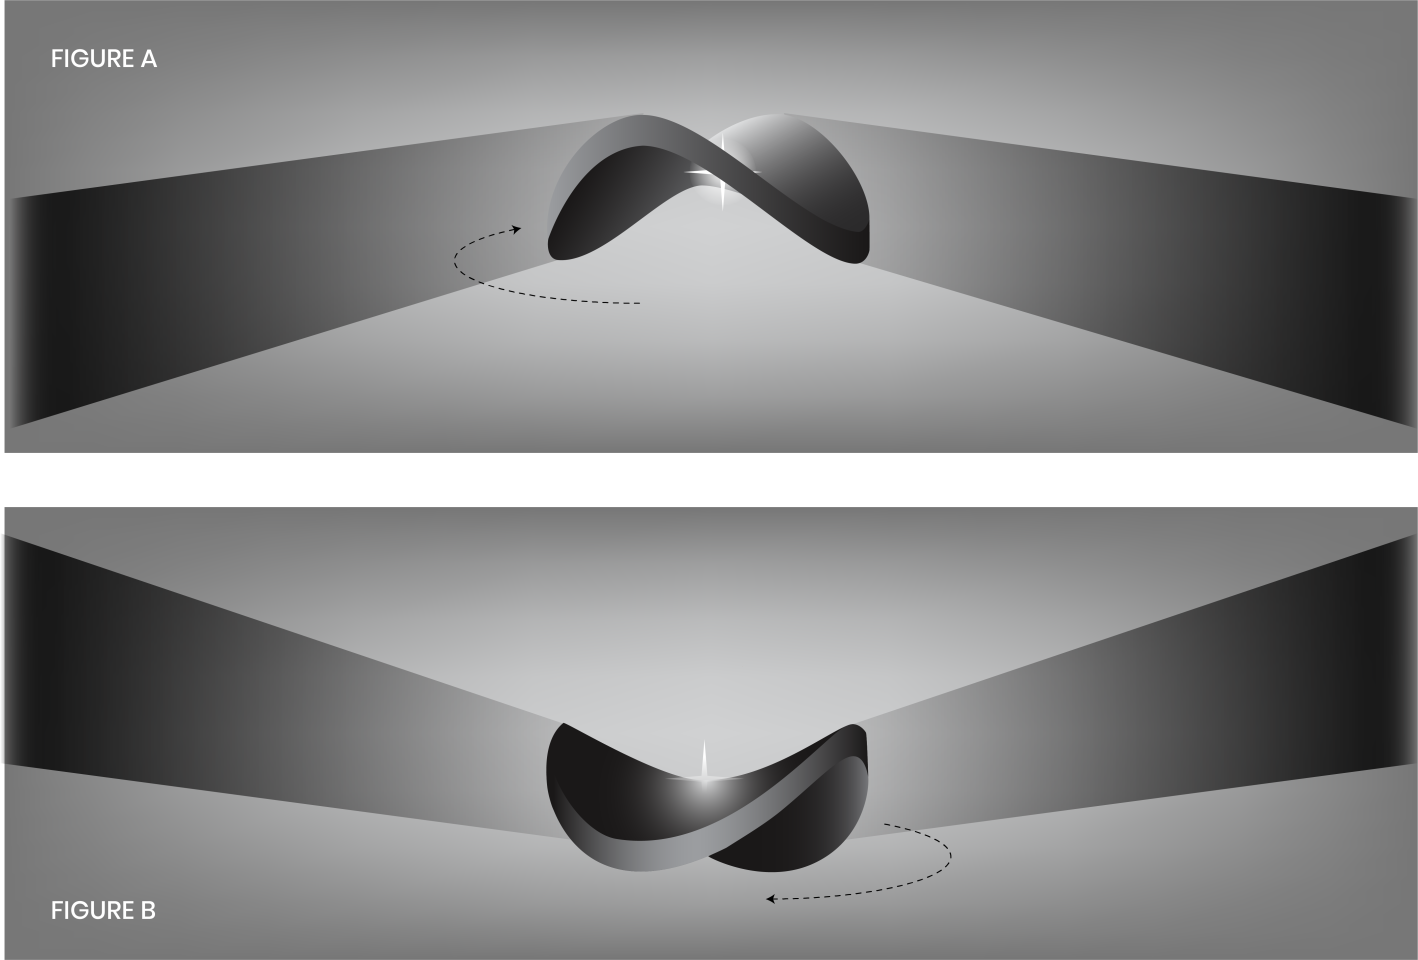 A schematic of the saddle-shaped disk, and how it could create the flapping wing shadows